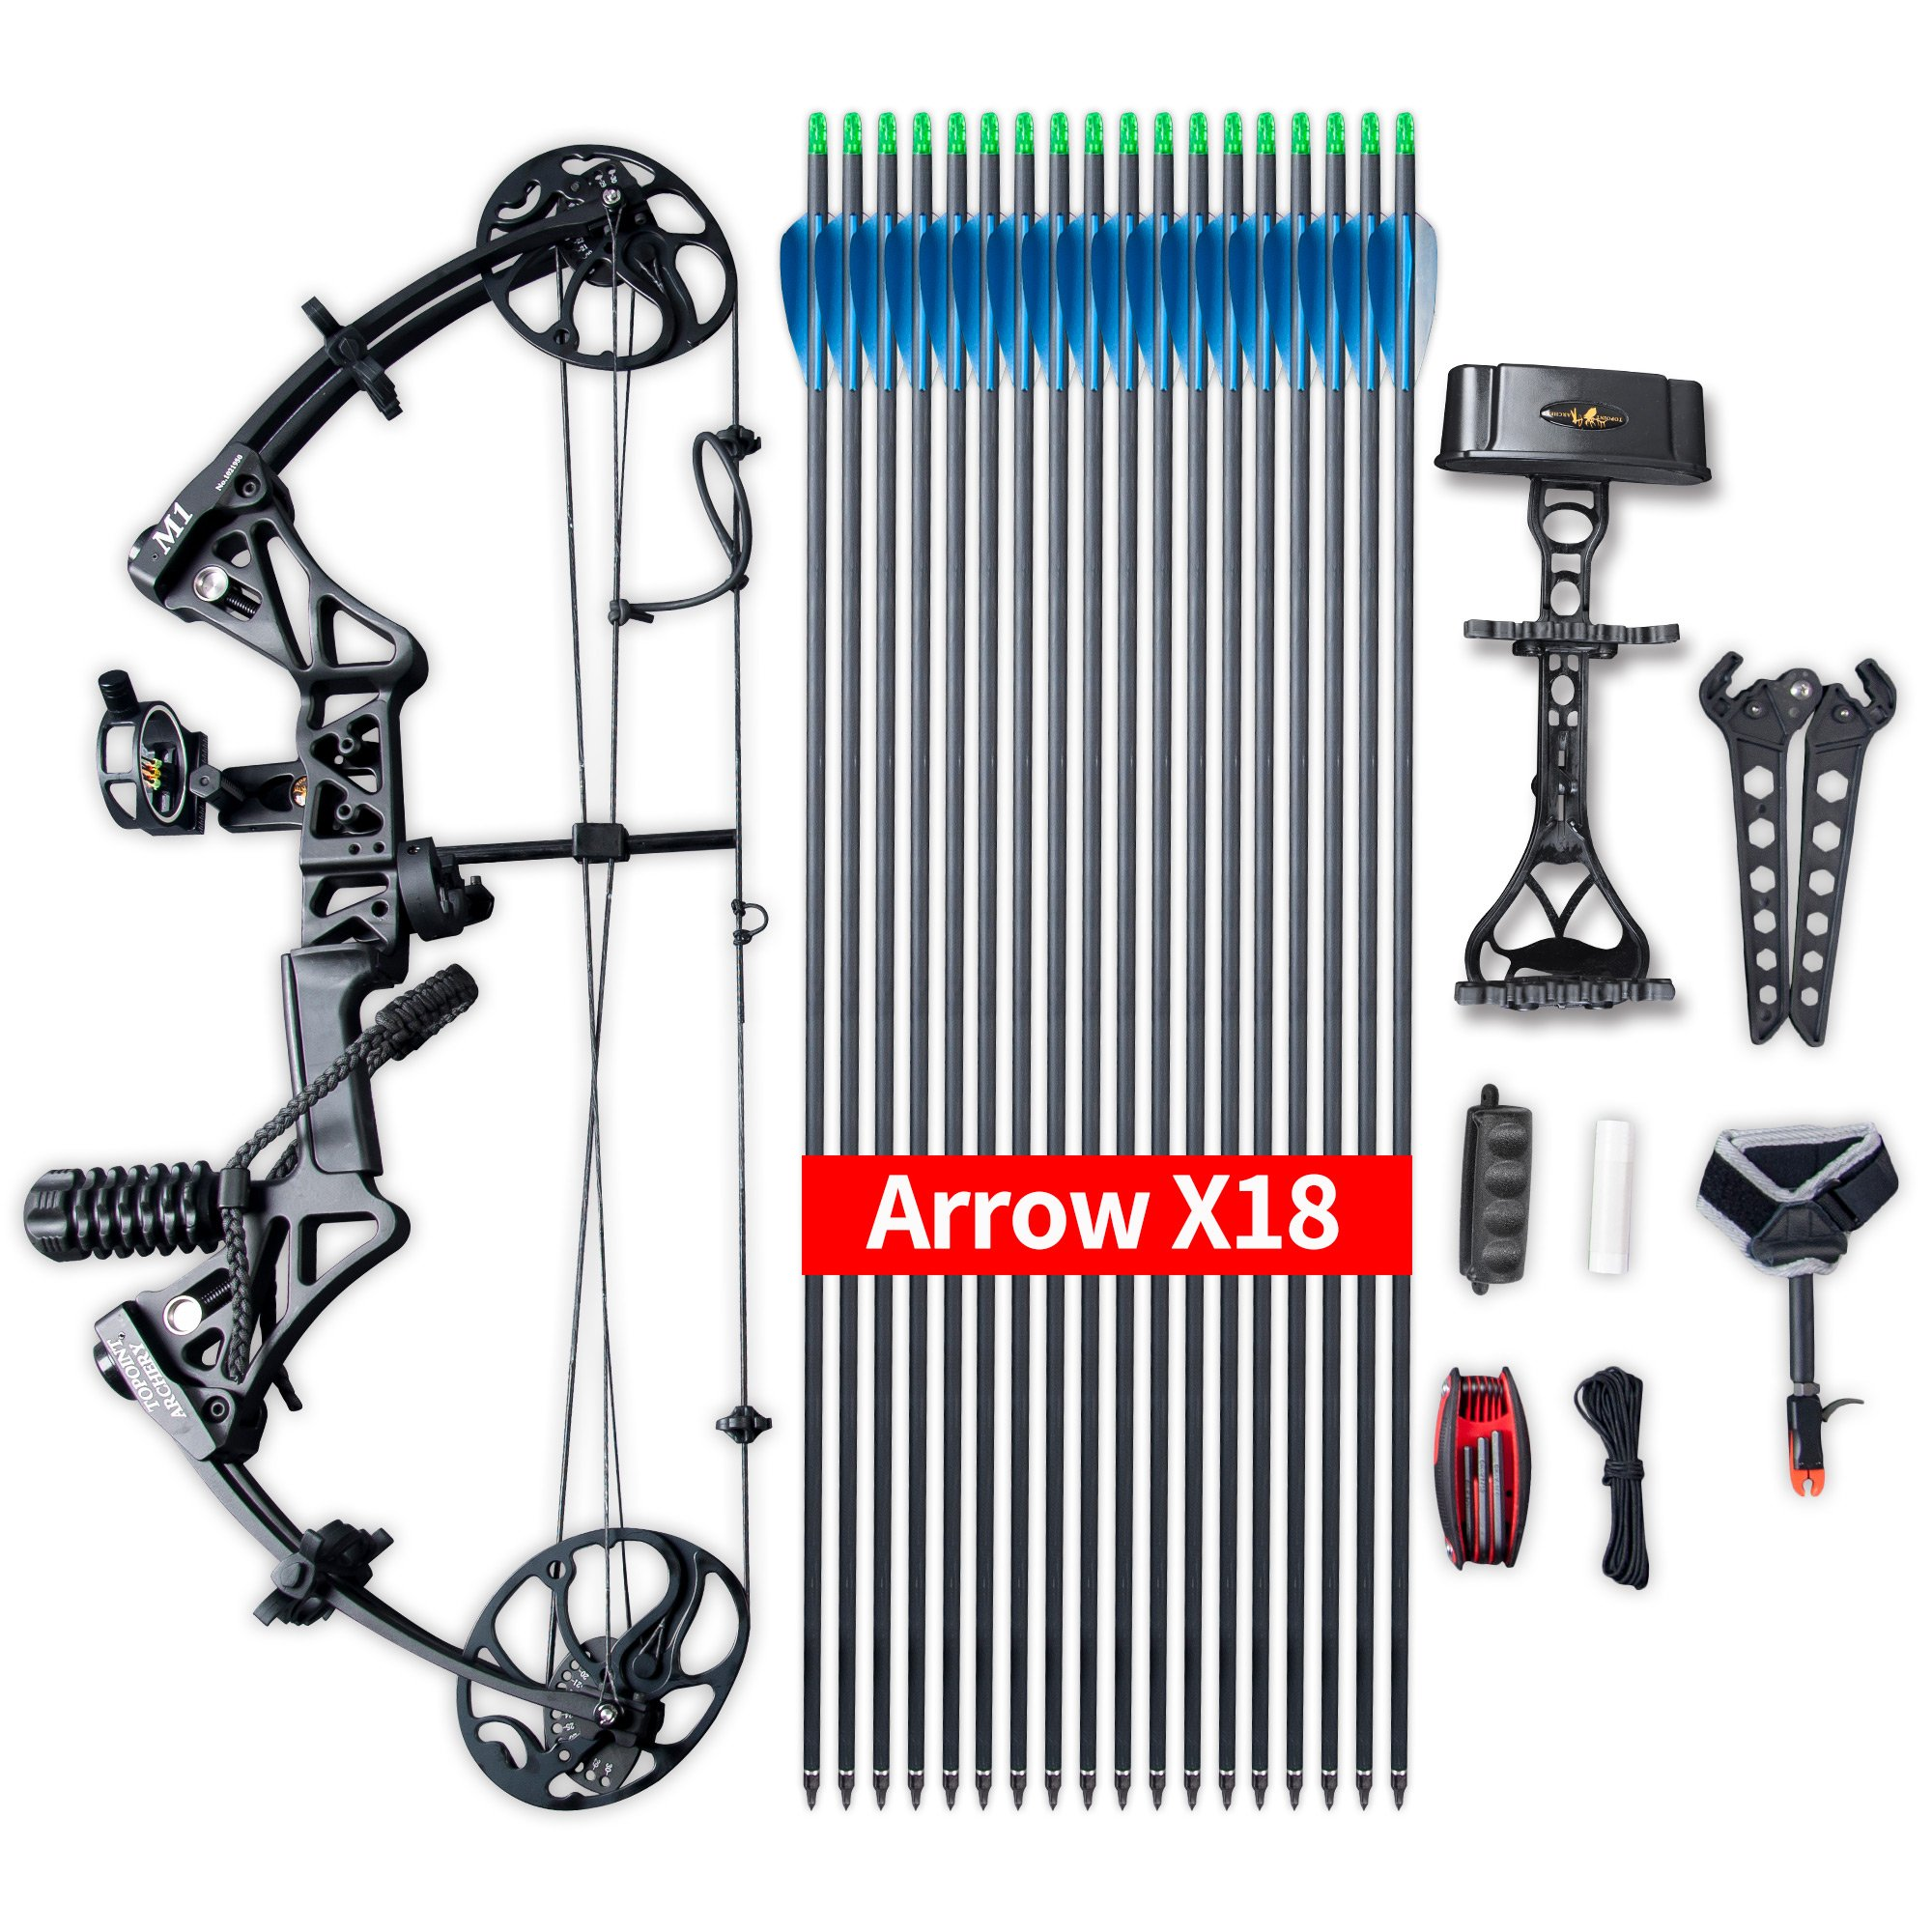 Compound Bow Package,M1,19''-30'' Draw Length,19-70Lbs Draw Weight,320fps IBO Via Express Service Delivered Within 7Days(BLACK)